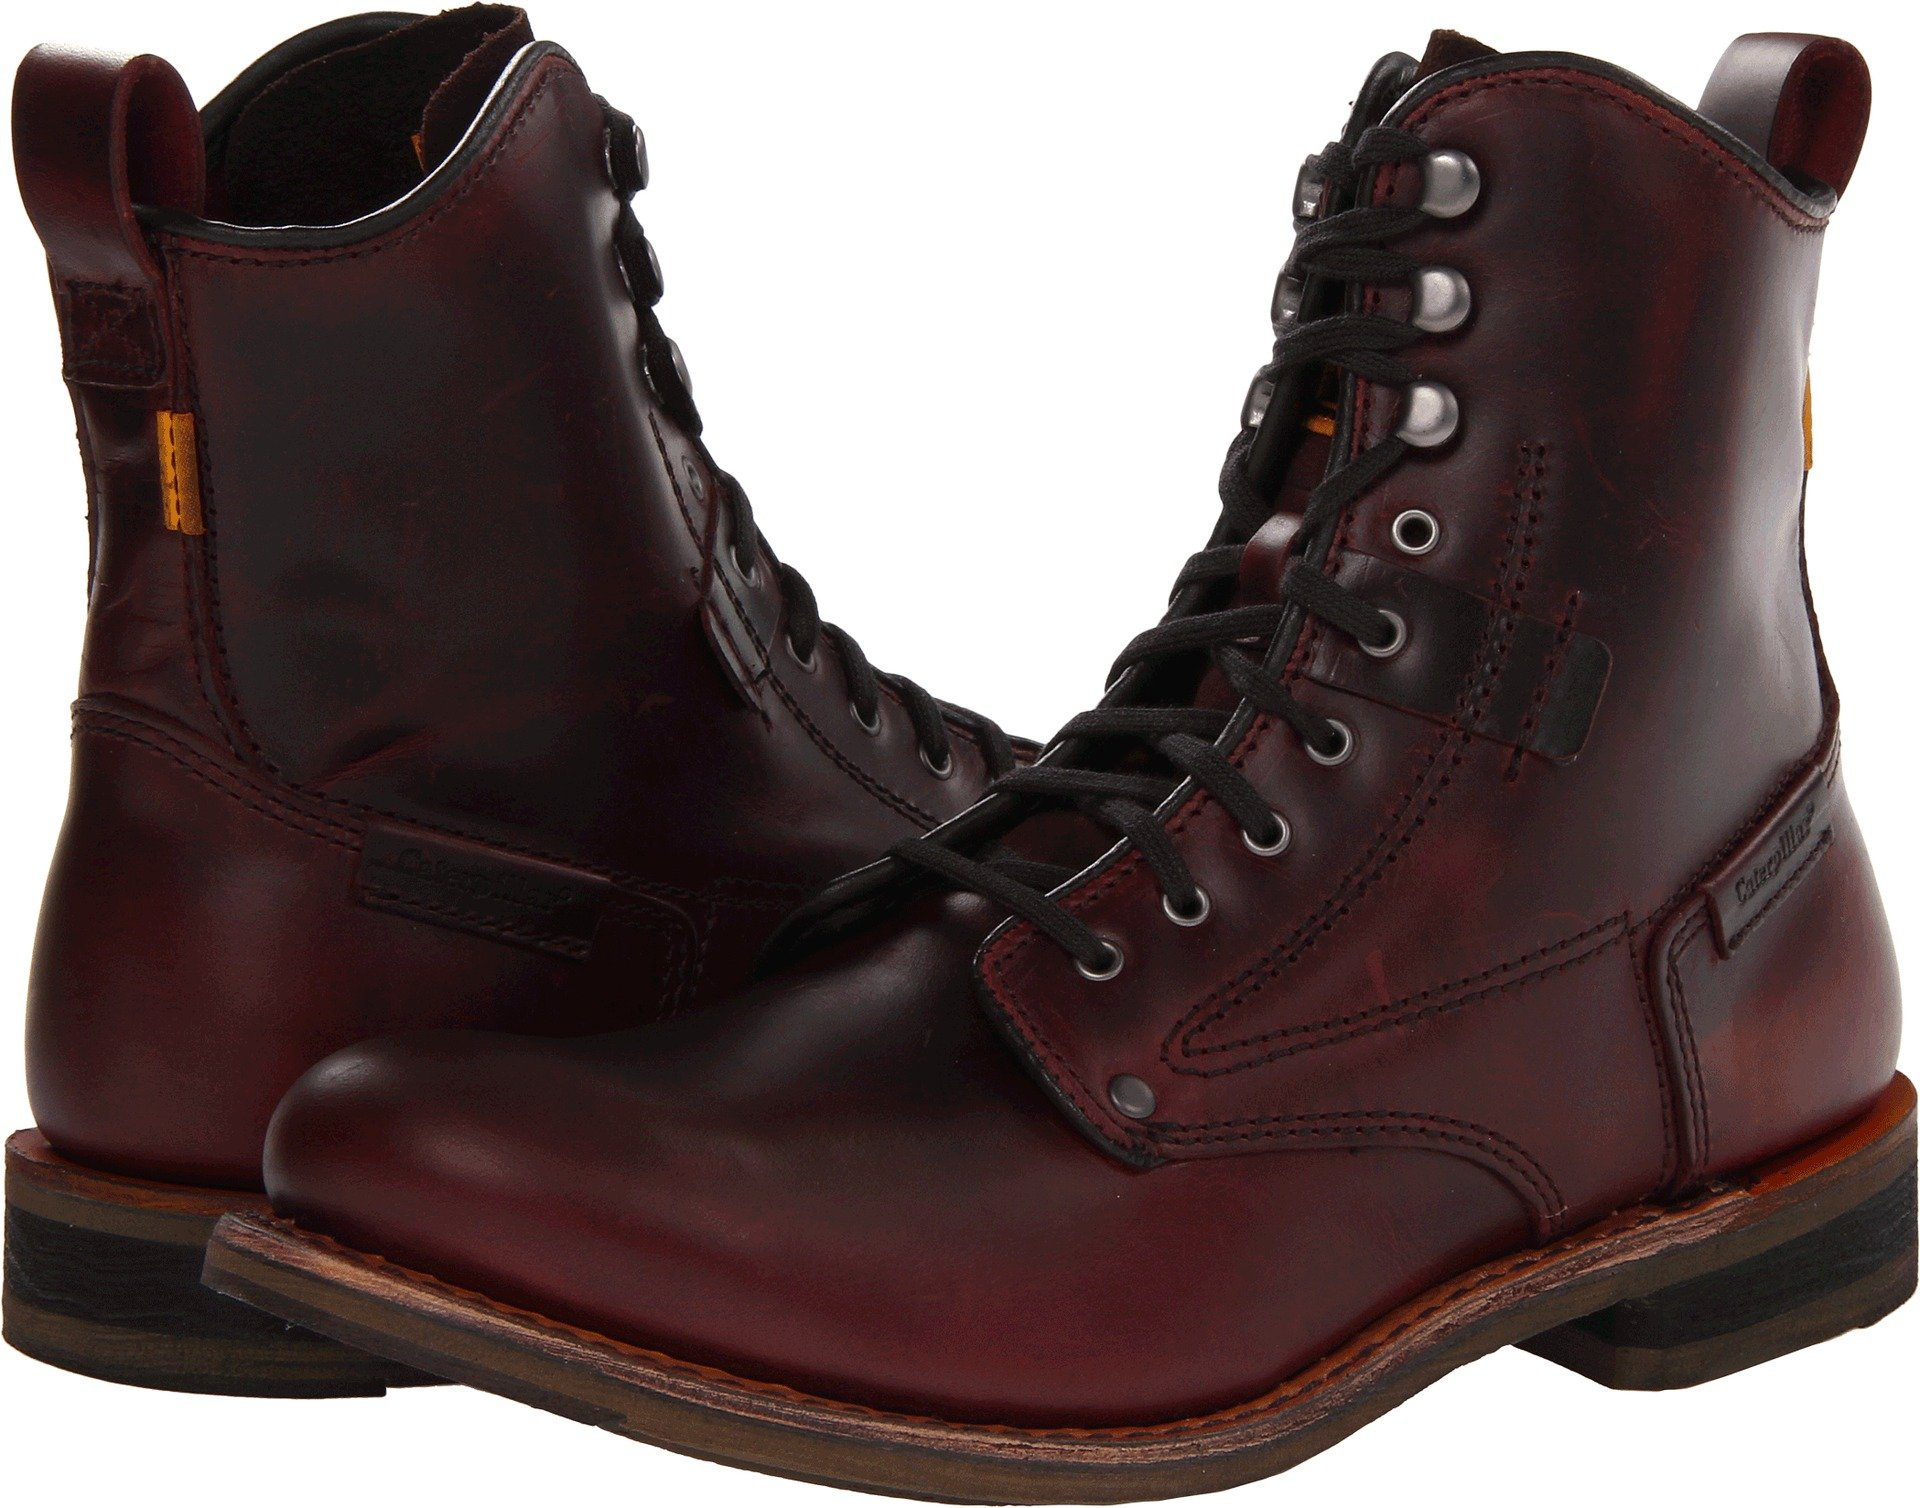 Caterpillar Men's Orson Boot,Oxblood,10.5 M US by Caterpillar